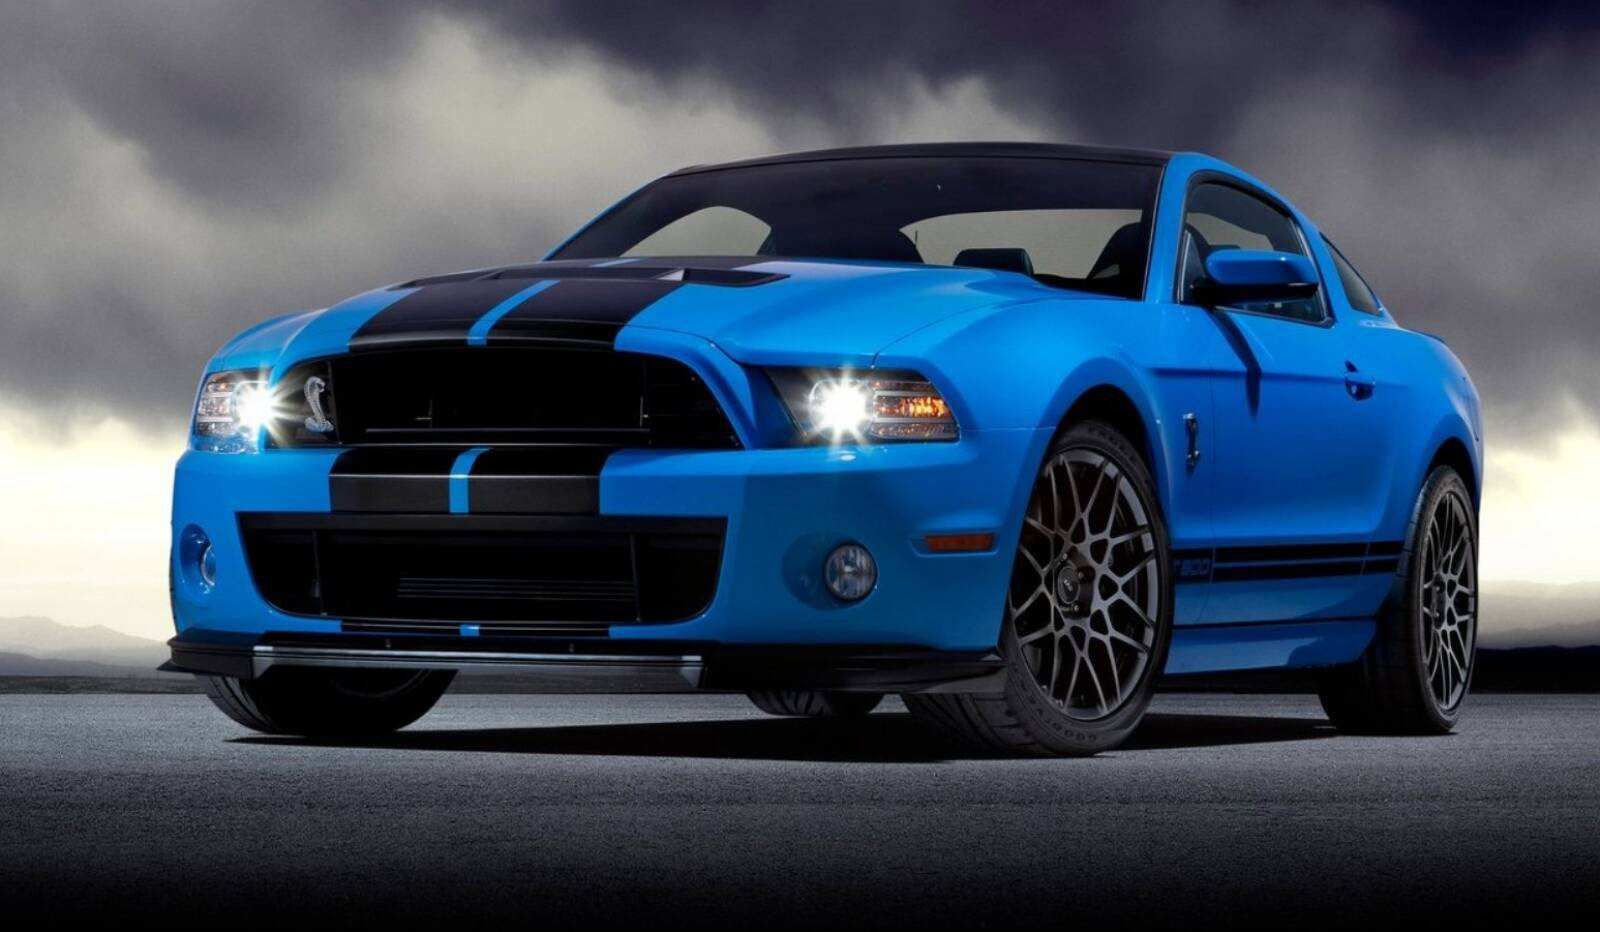 2015 Ford Mustang to Drop Shelby and Supercharged Variants - GTspirit